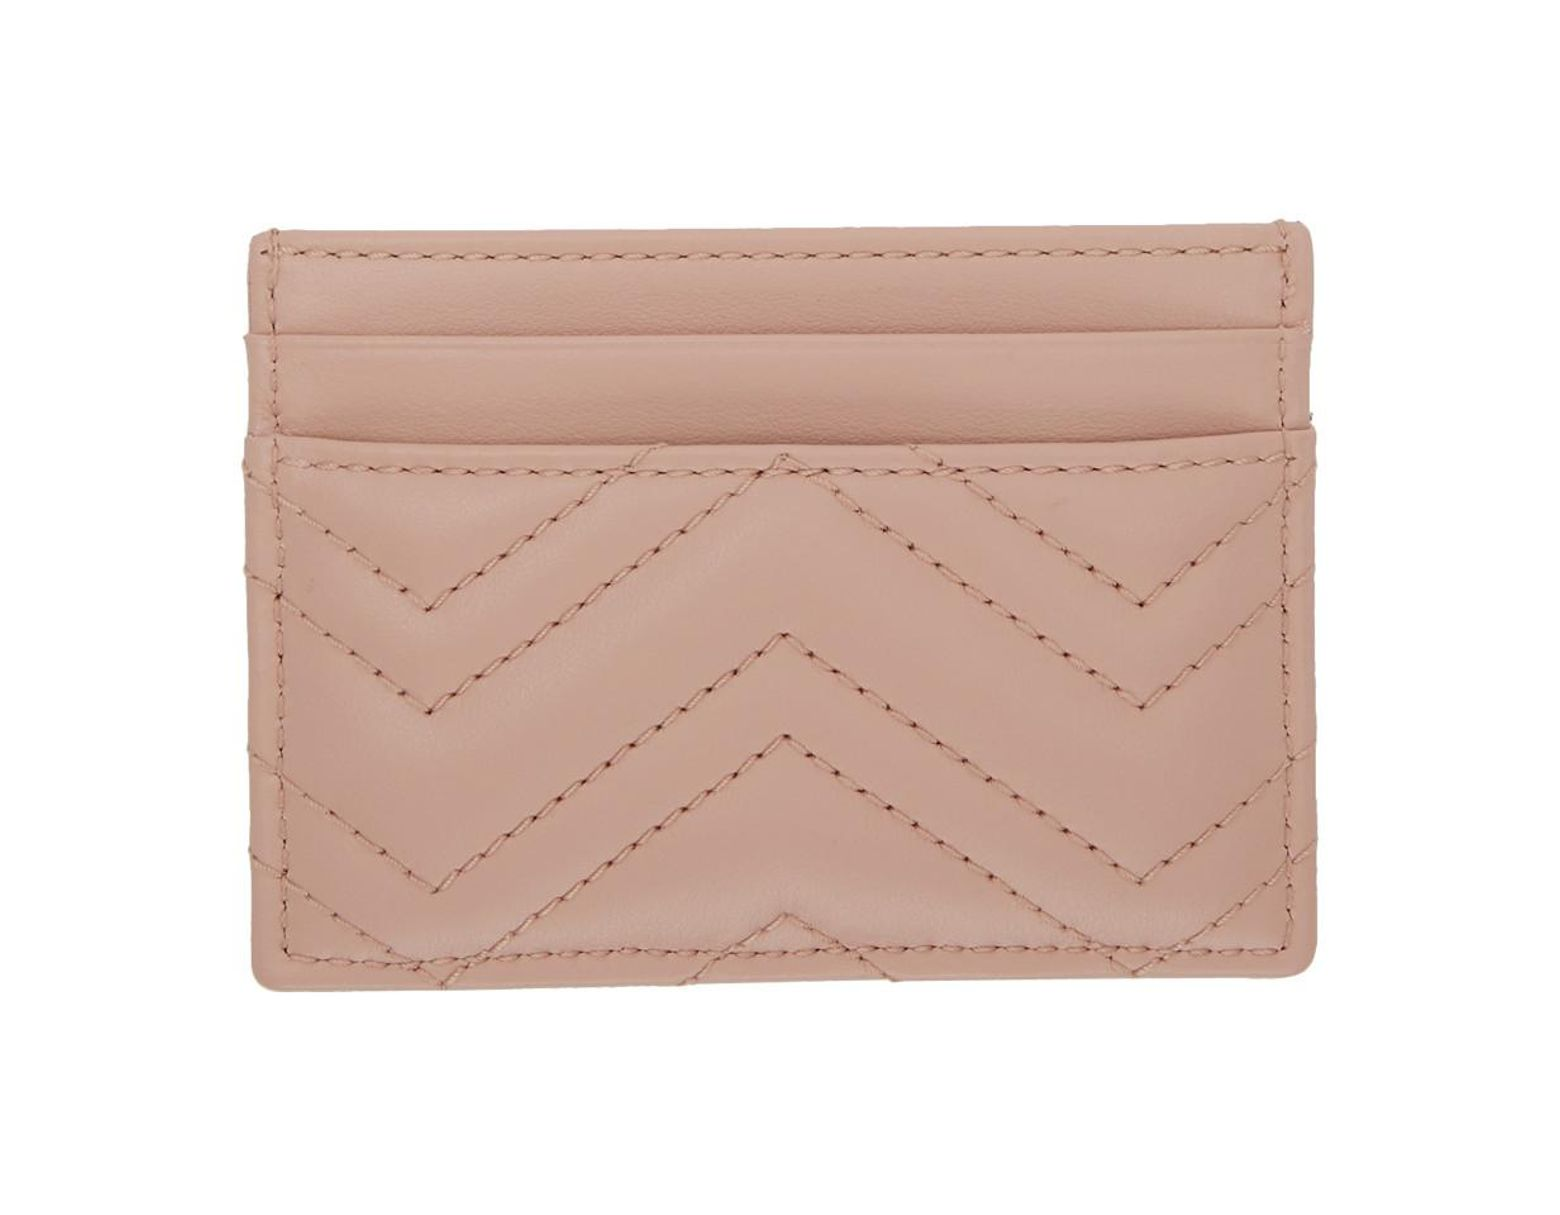 973e968699cc56 Gucci Pink GG Marmont Card Holder in Pink - Save 30% - Lyst